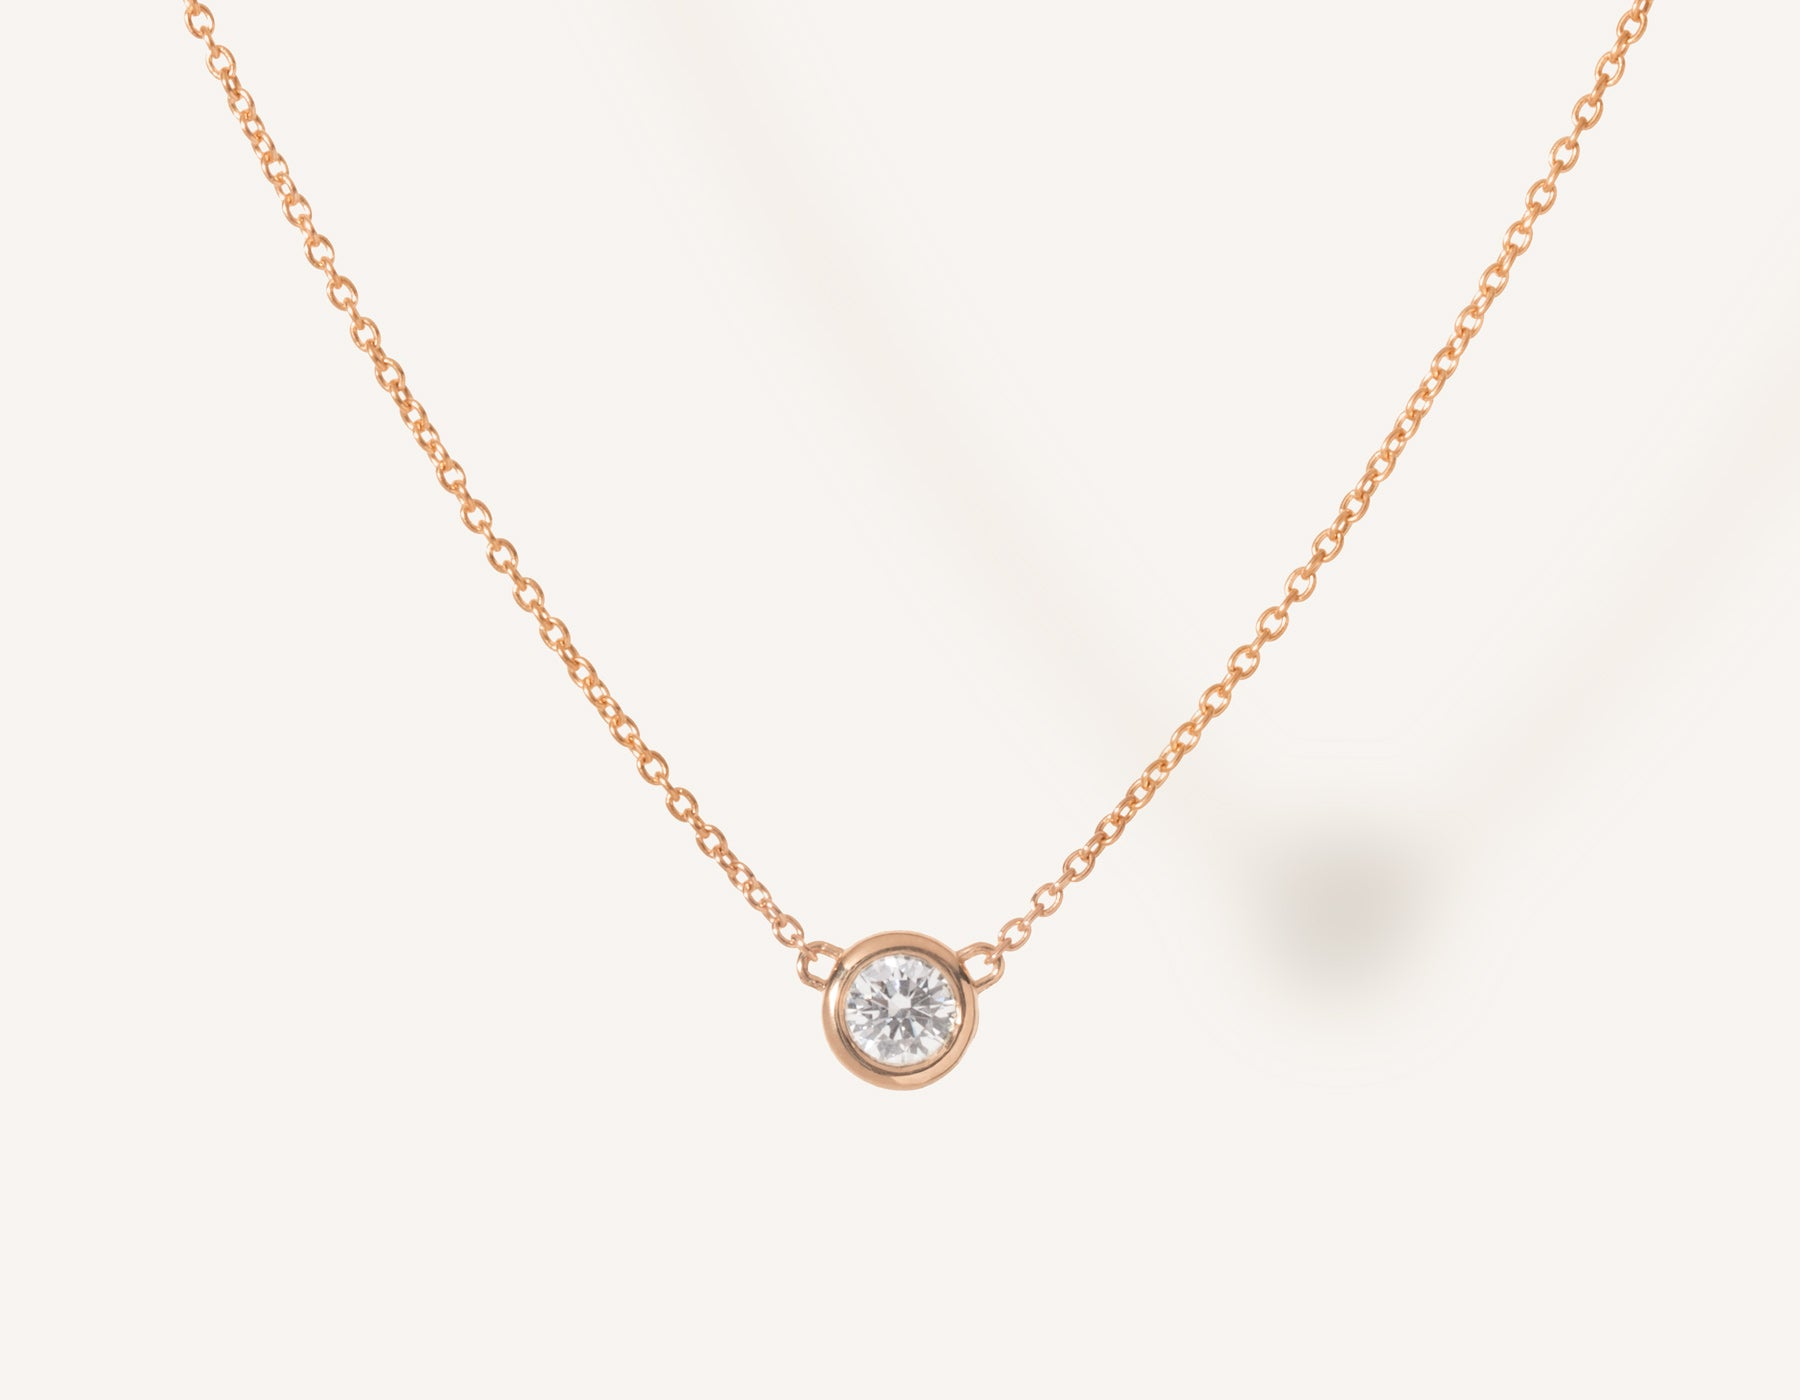 Simple modern 14k solid gold round brilliant diamond Solitaire Necklace bezel set on thin chain with spring ring clasp Vrai and Oro, 14K Rose Gold